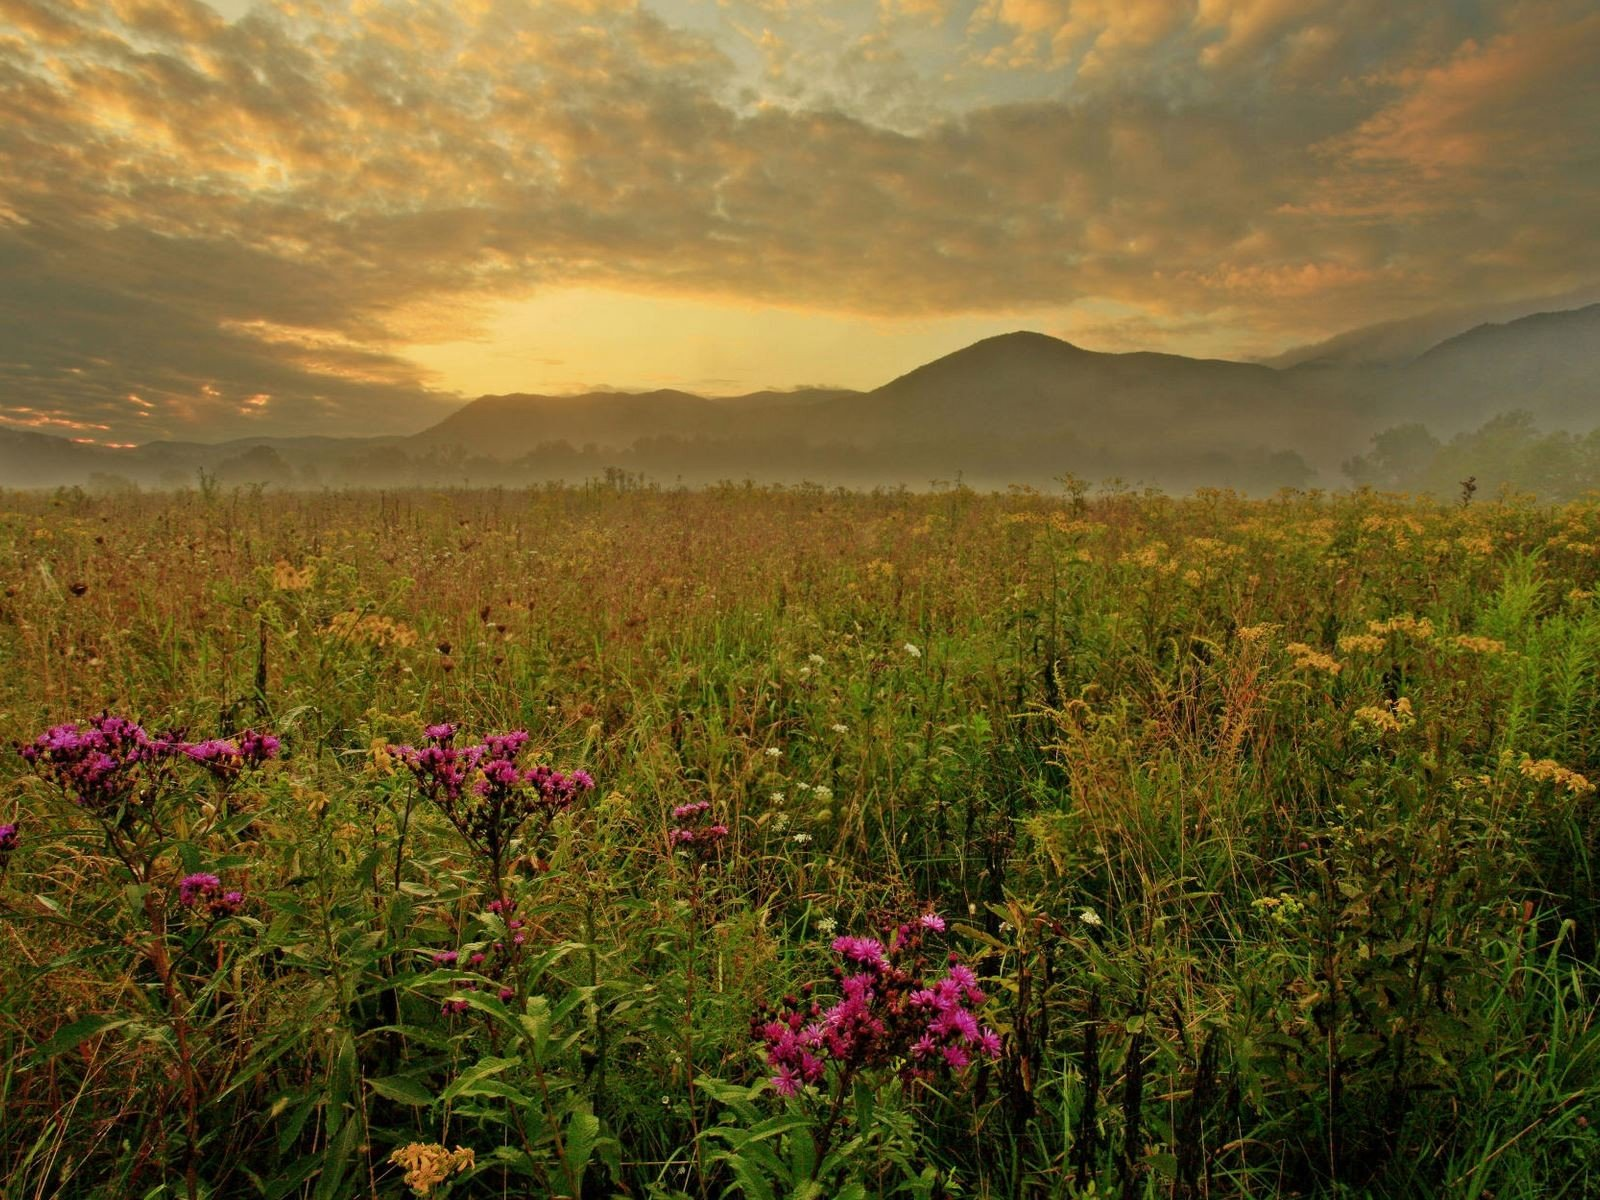 Morning Cades Cove Great Smoky Mountains   HD Wallpaper 1600x1200 1600x1200